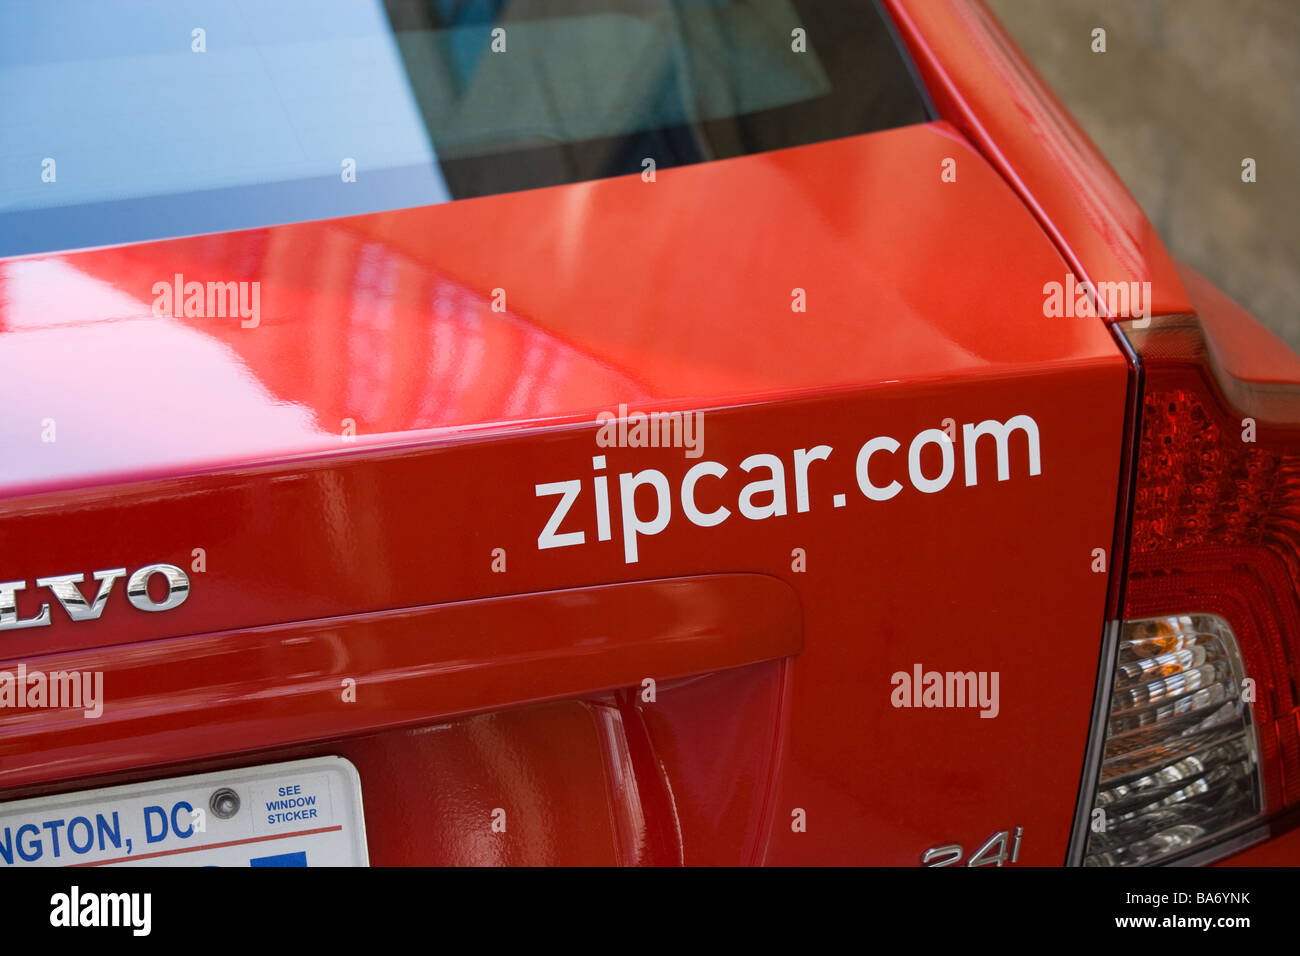 The Zipcar.com internet domain name on the trunk, boot of a red Volvo car in Washington DC, US - Stock Image